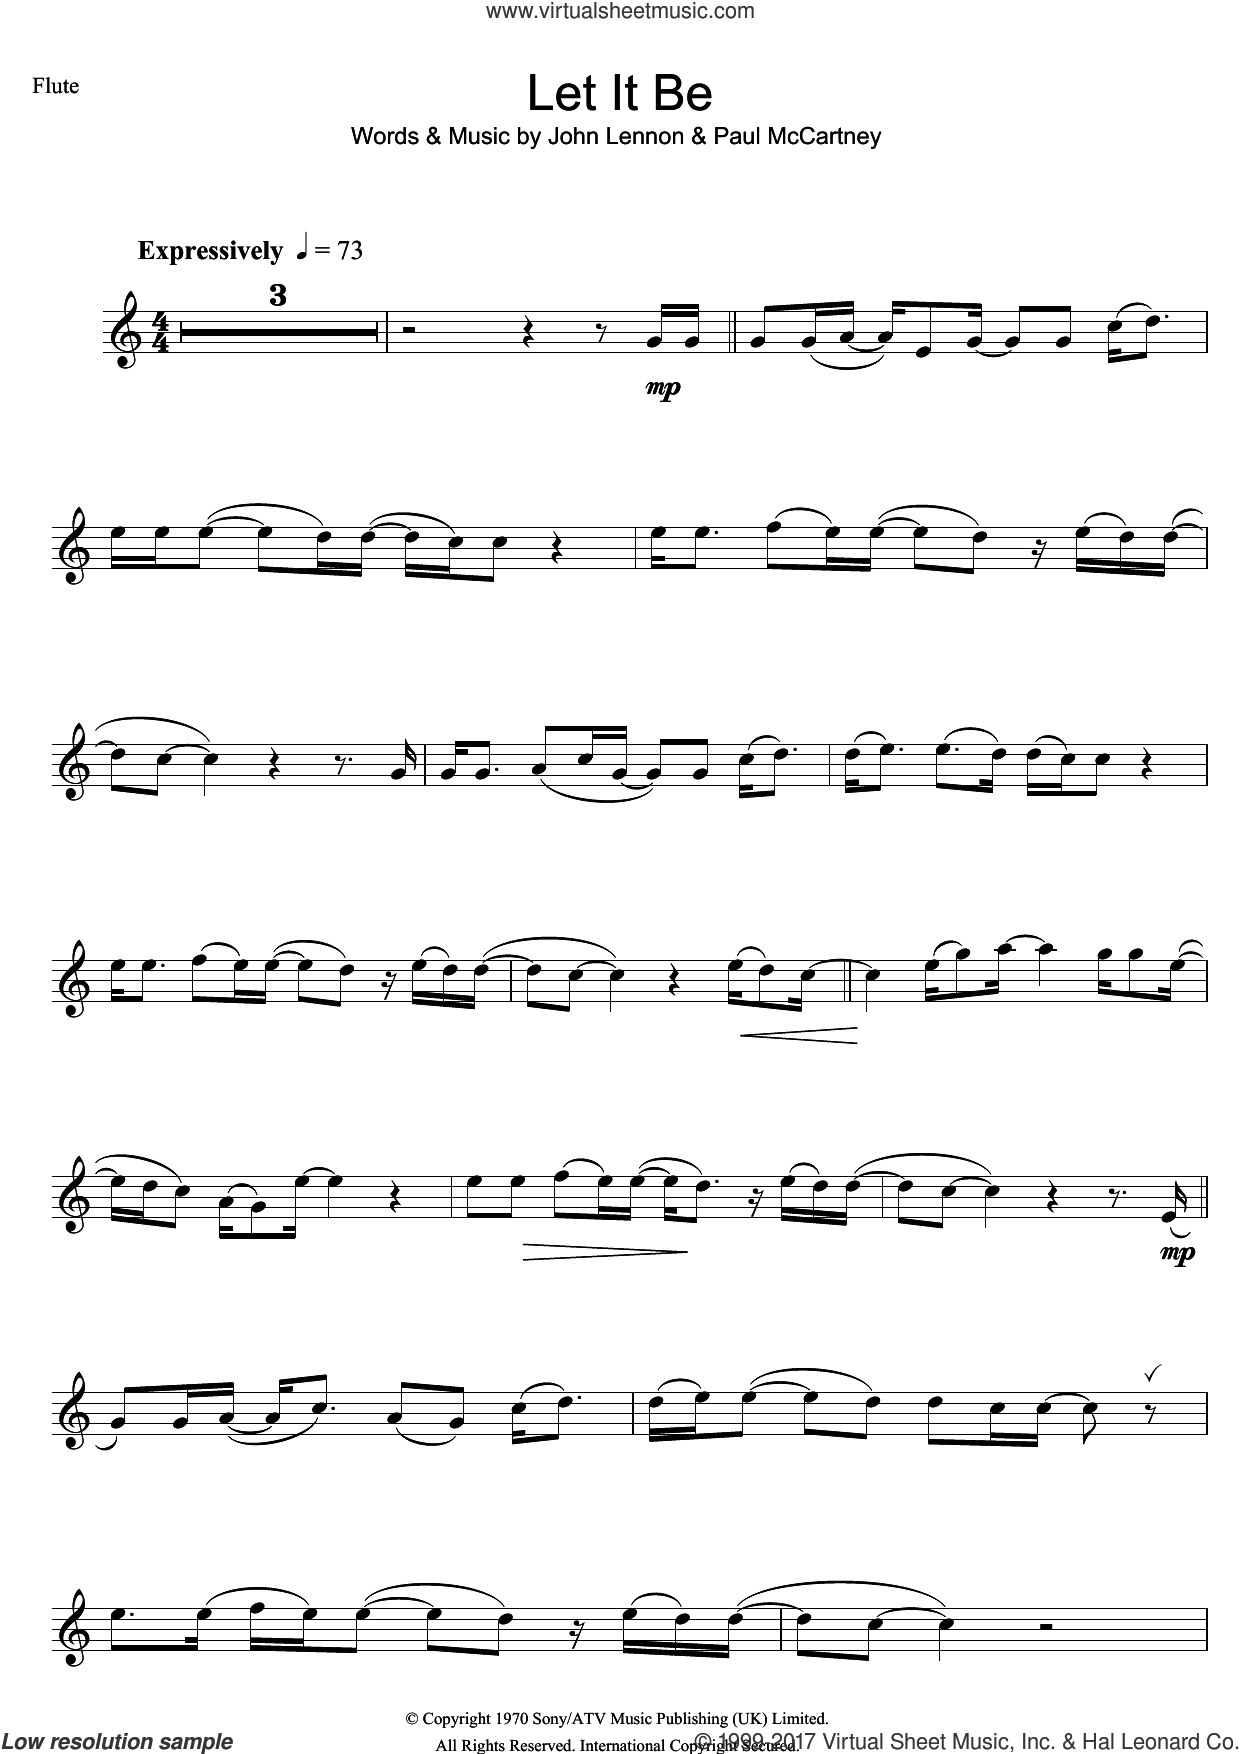 Let It Be sheet music for flute solo by The Beatles, John Lennon and Paul McCartney, intermediate skill level